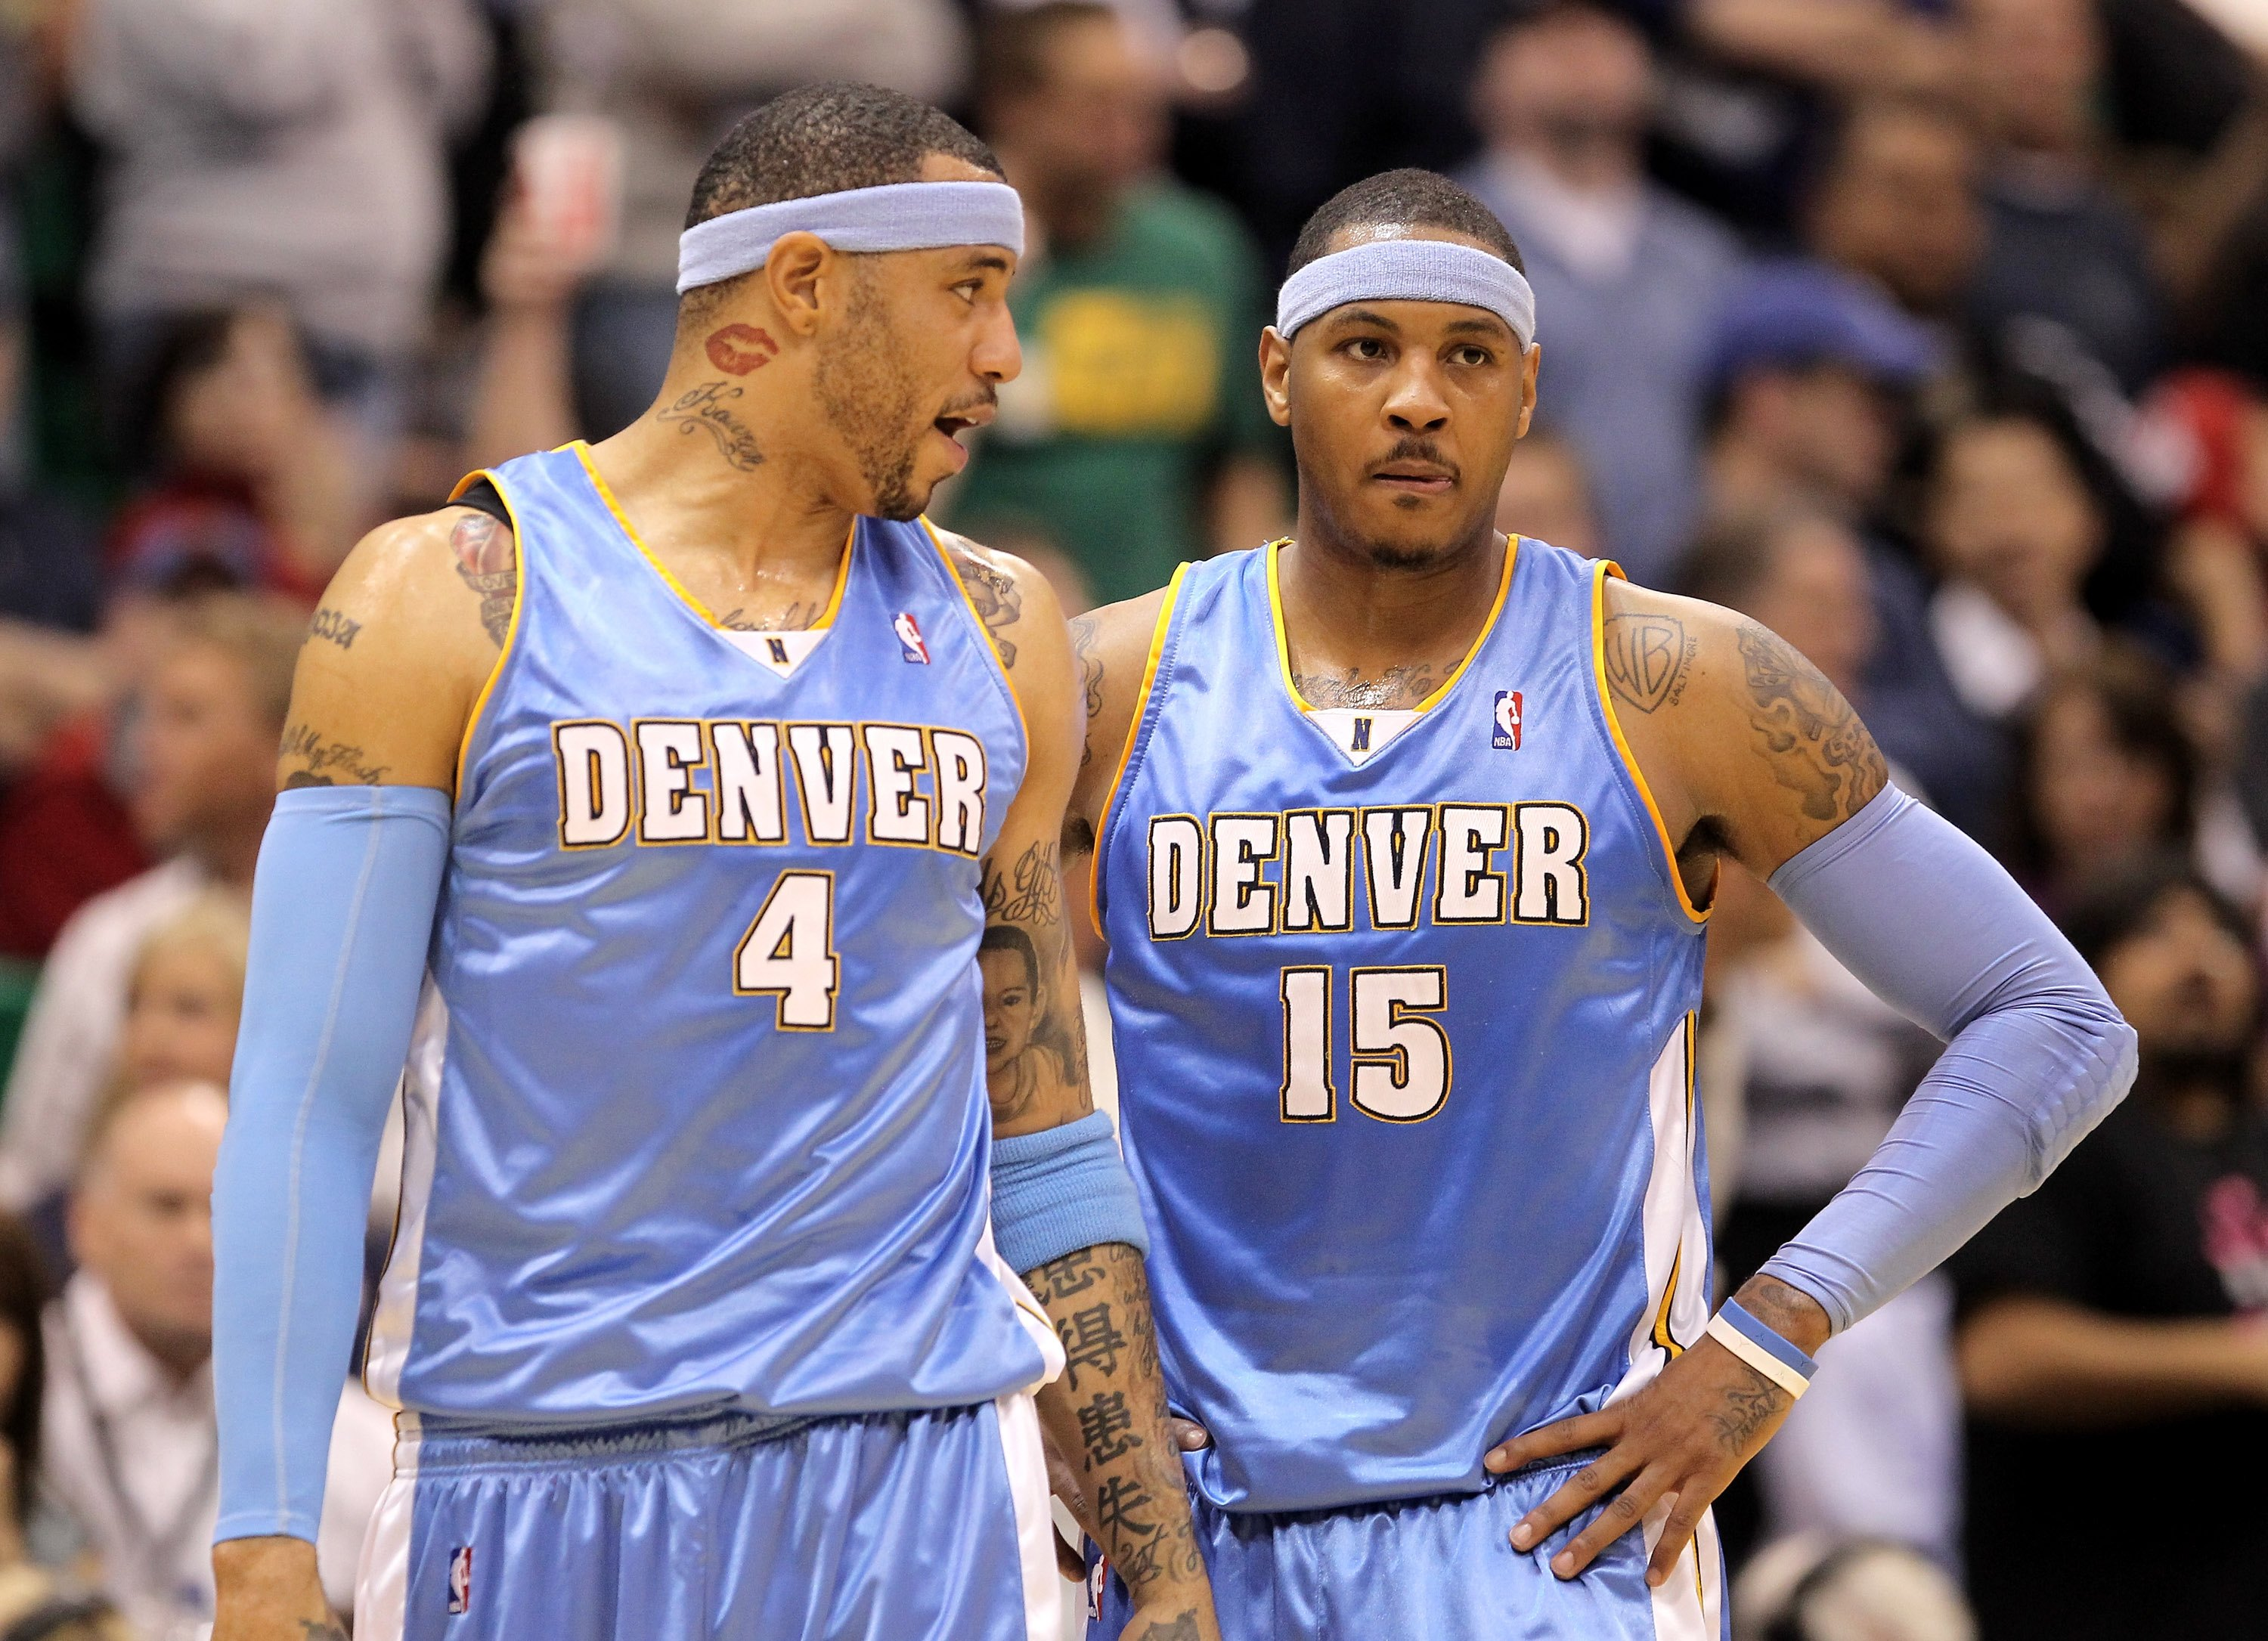 Kenyon Martin fires back at cowardly George Karl on Twitter